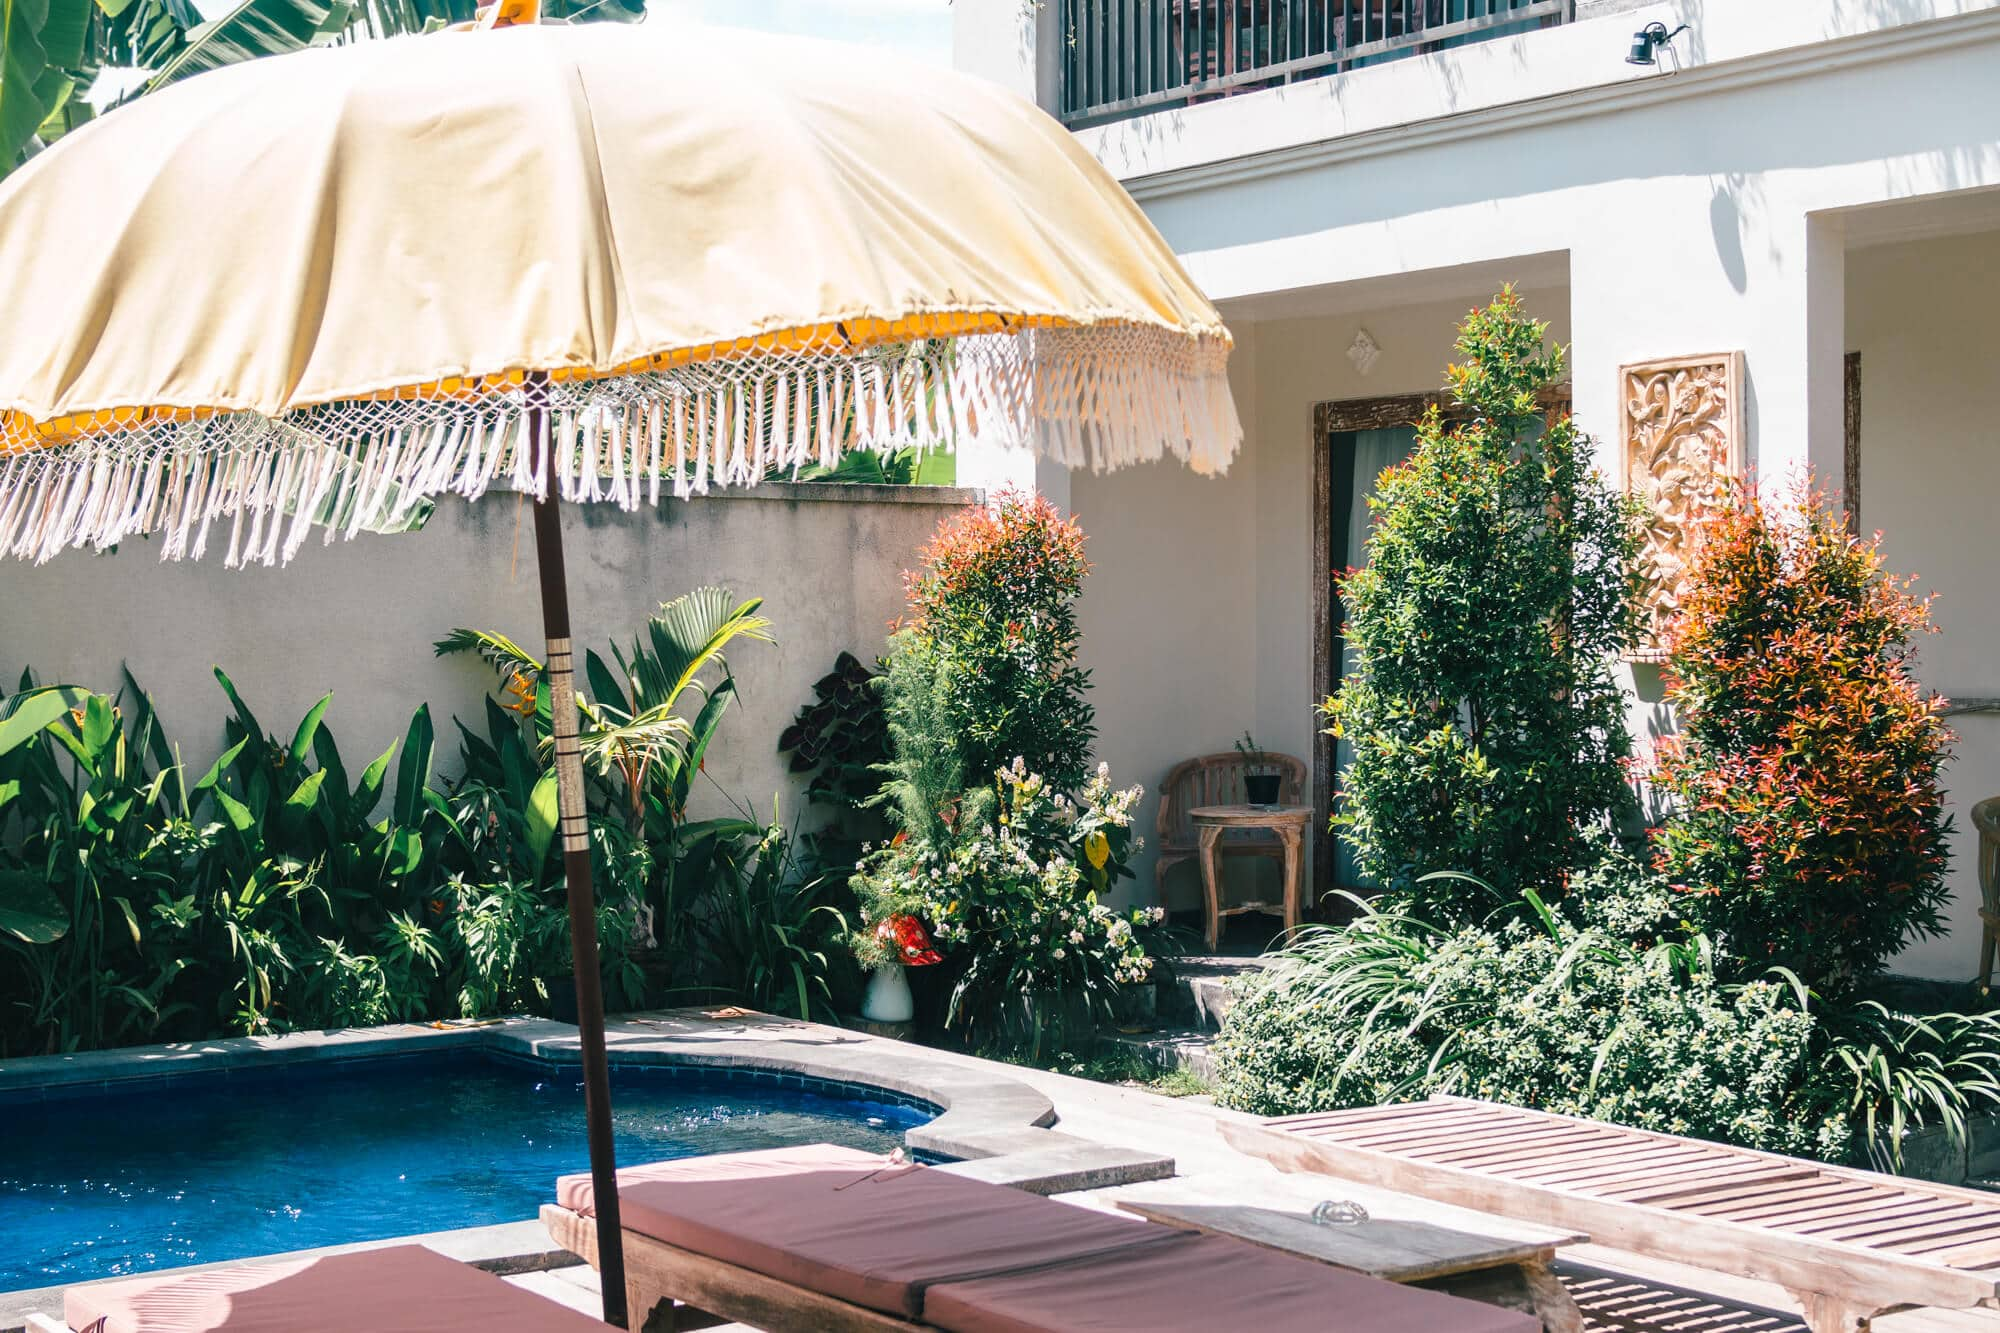 Bali's best budget hotels, villas & Airbnbs - The Spare Room is the best value Airbnb in Canggu